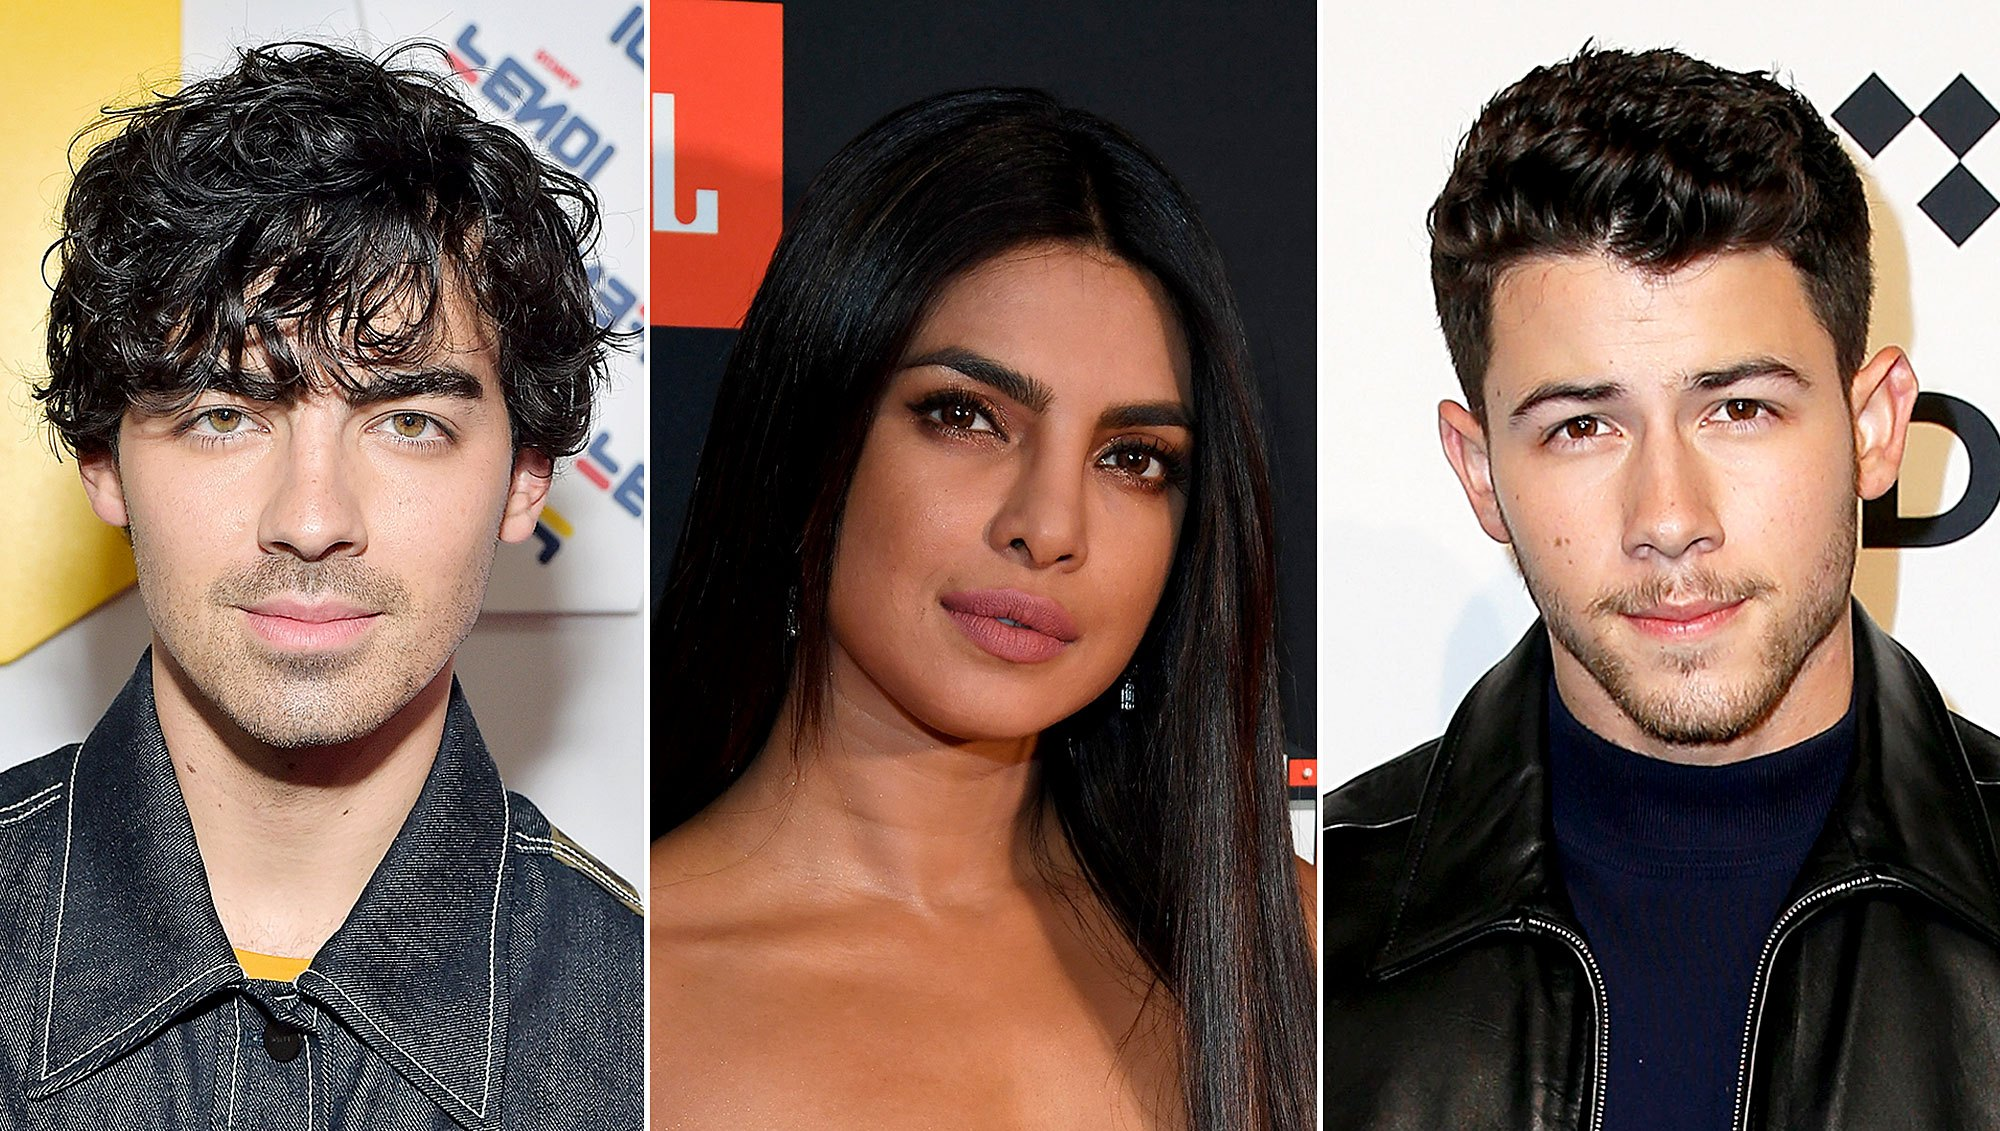 Joe Jonas Welcomes Priyanka Chopra to the Family After Slamming Theory That Marriage to Nick Jonas is Fake